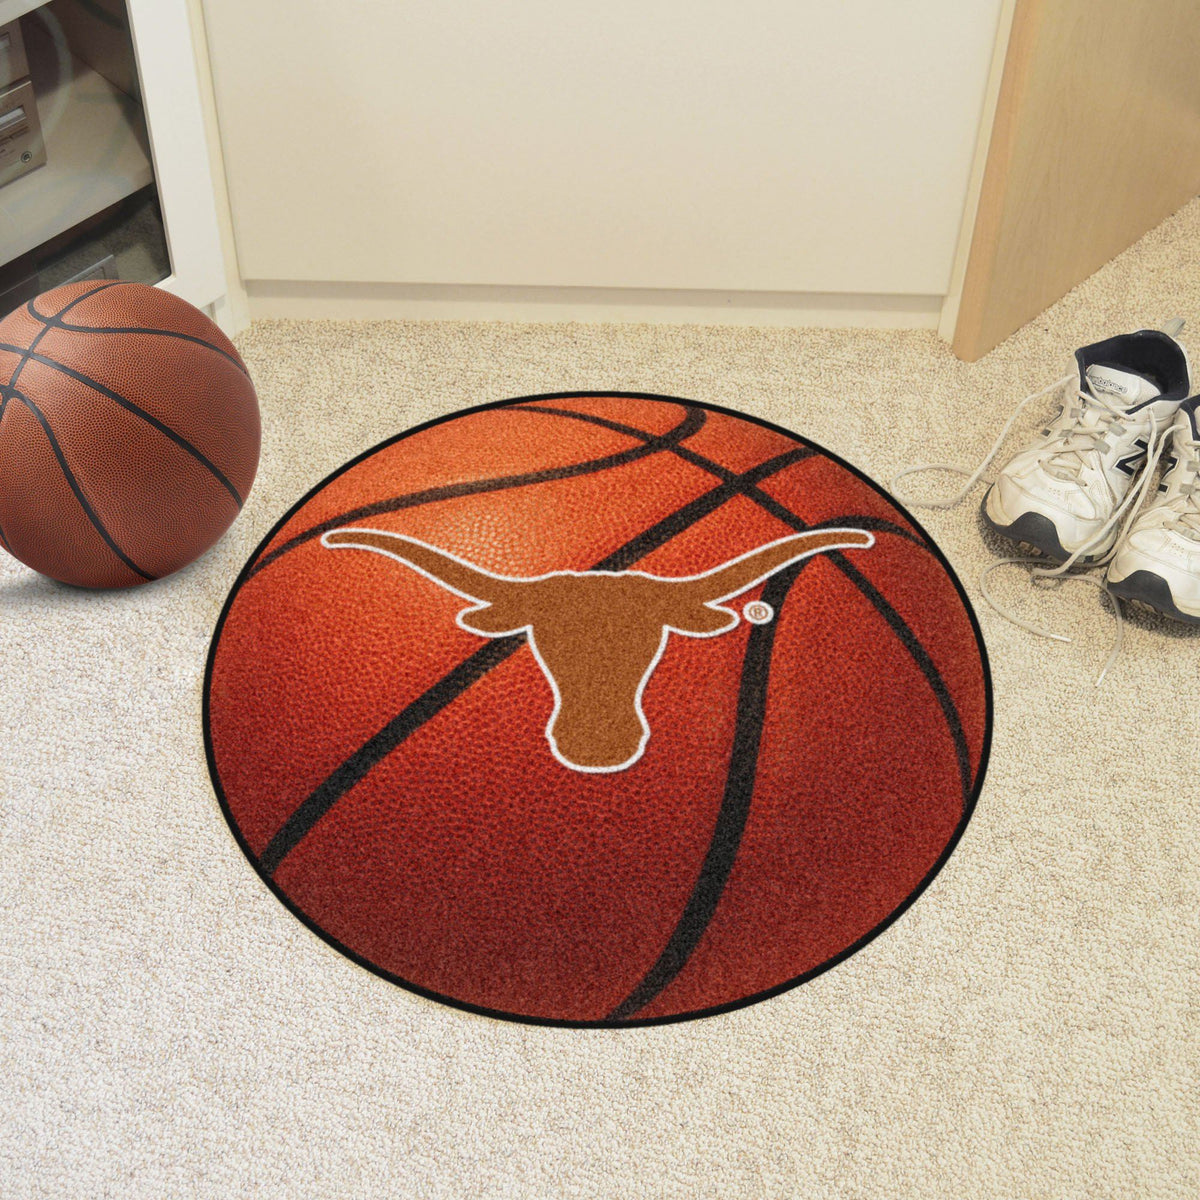 Collegiate - Basketball Mat: T - Z Collegiate Mats, Rectangular Mats, Basketball Mat, Collegiate, Home Fan Mats Texas